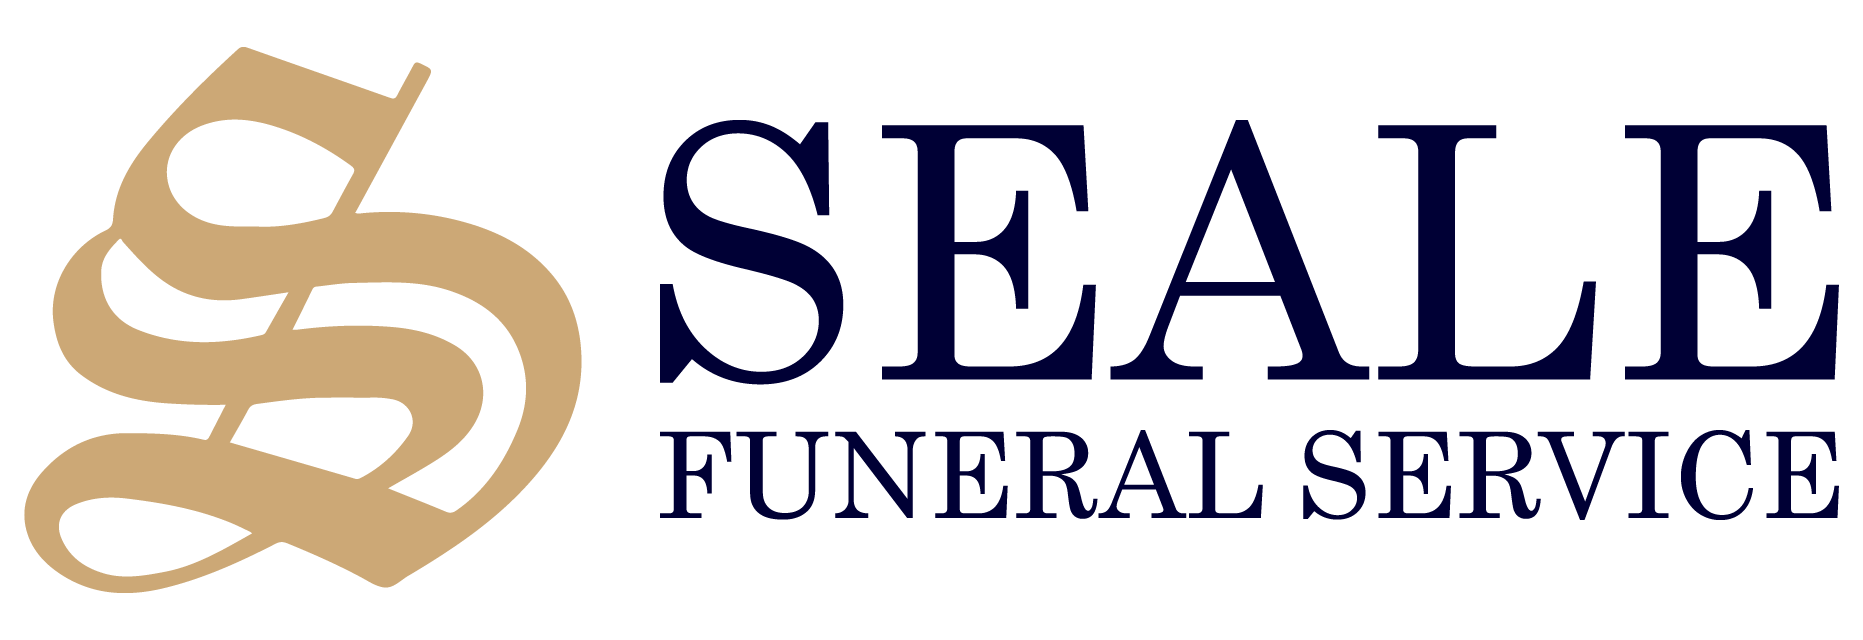 Seale Funeral Service